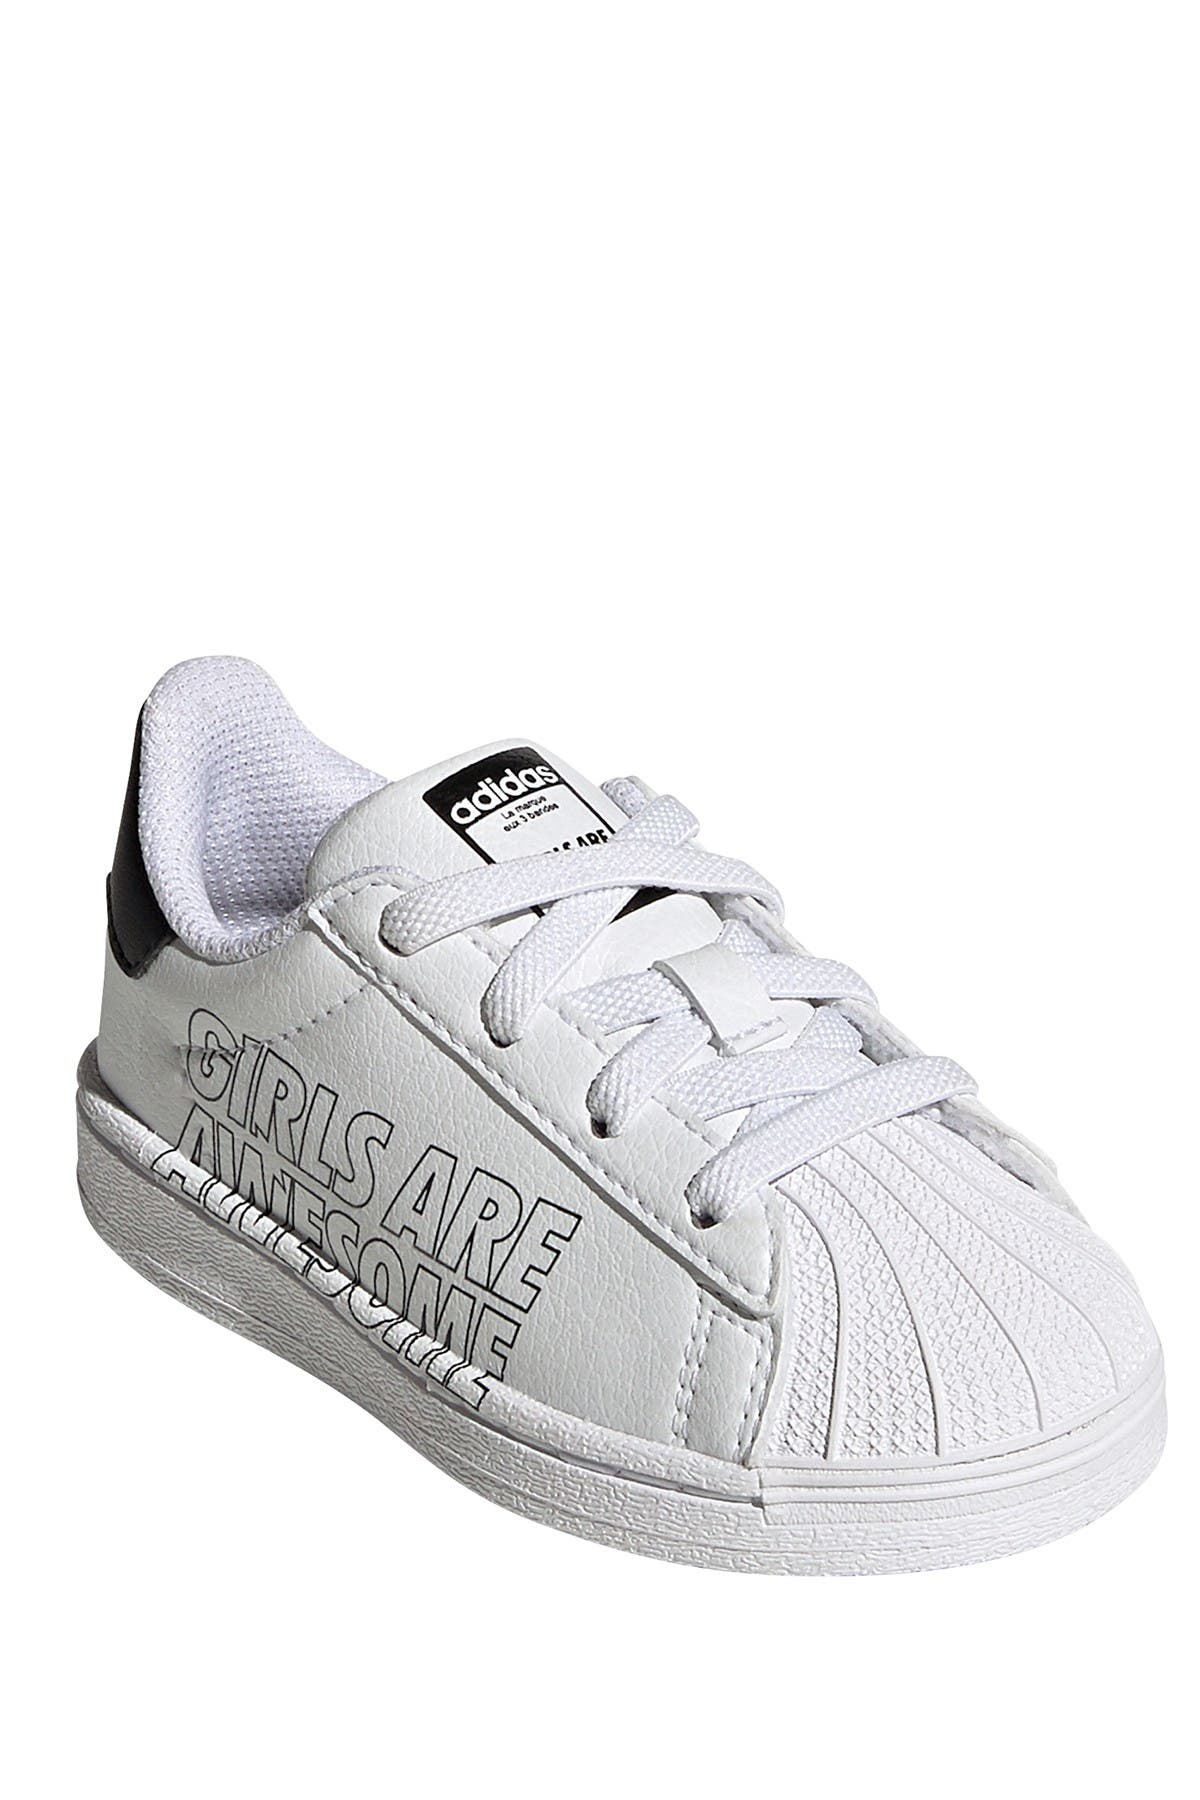 Image of ADIDAS ORIGINALS Superstar El Sneaker